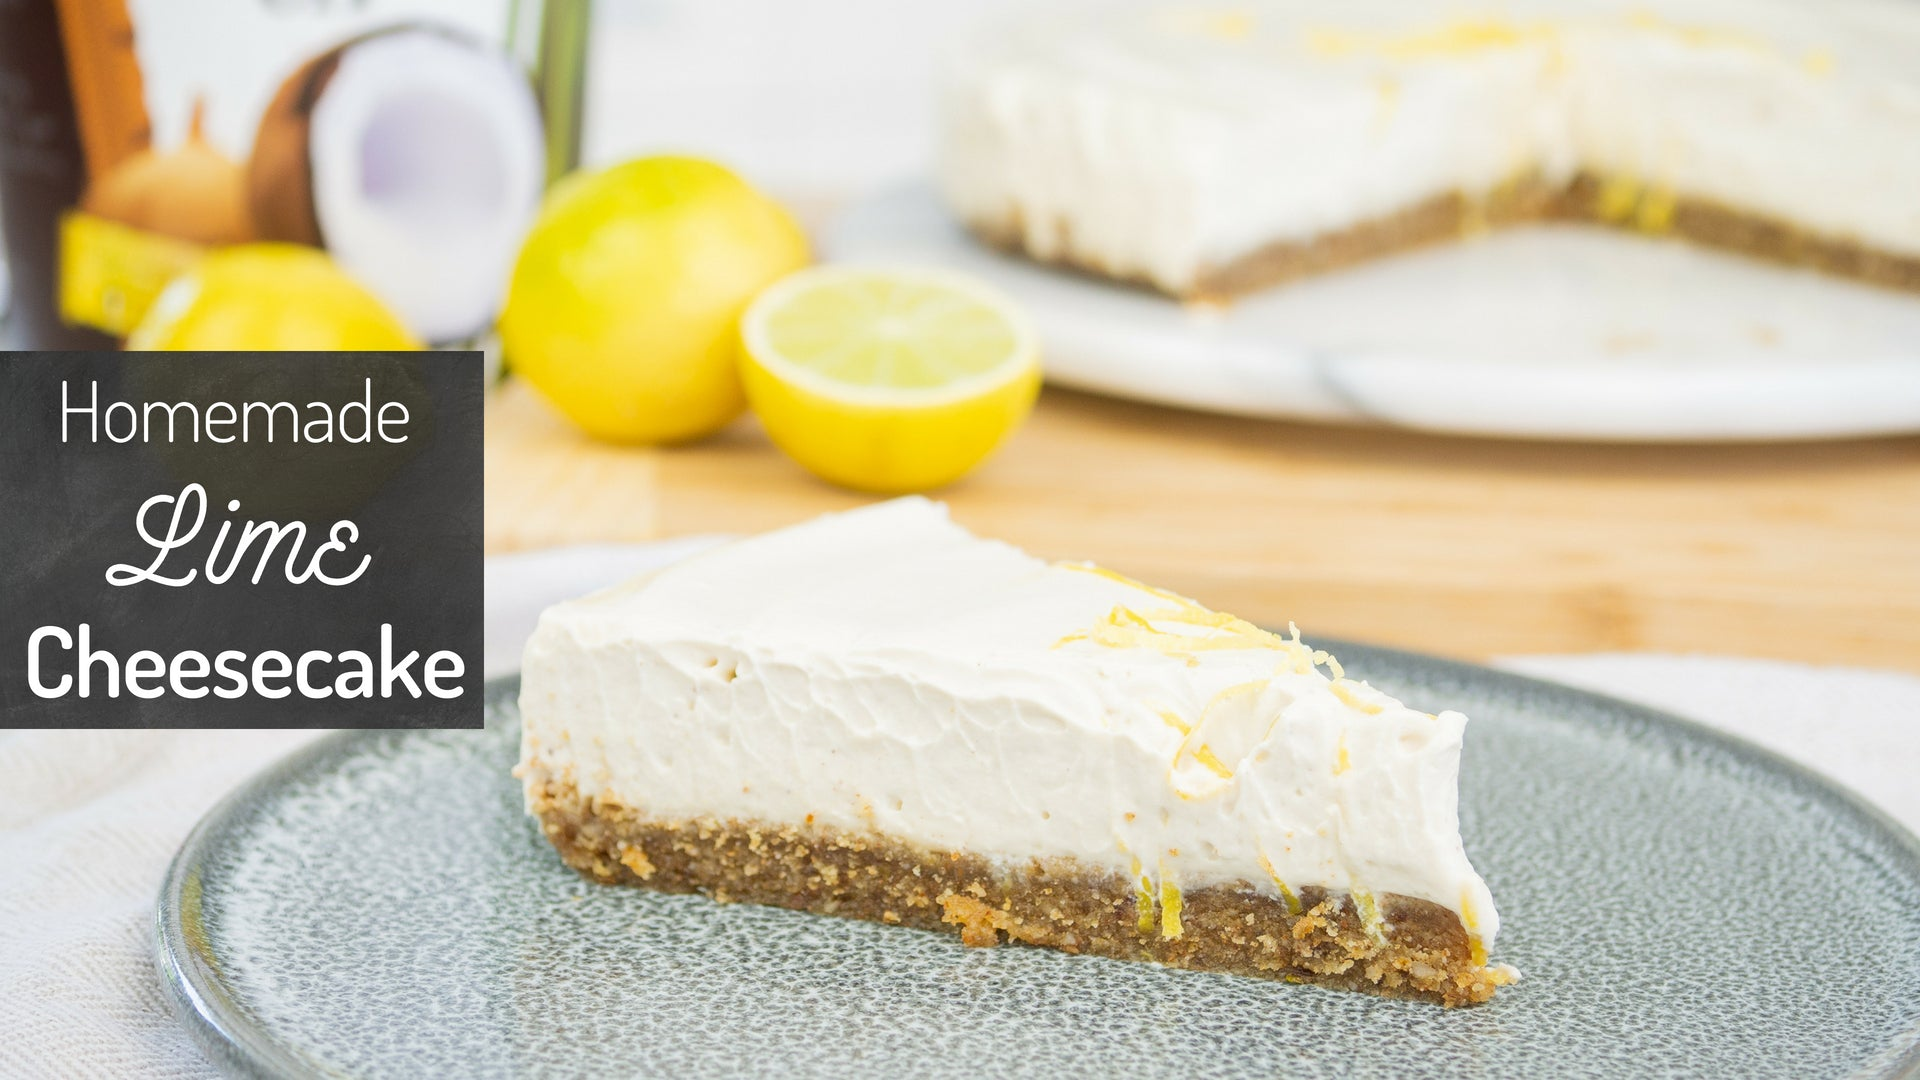 Homemade Lime Cheesecake